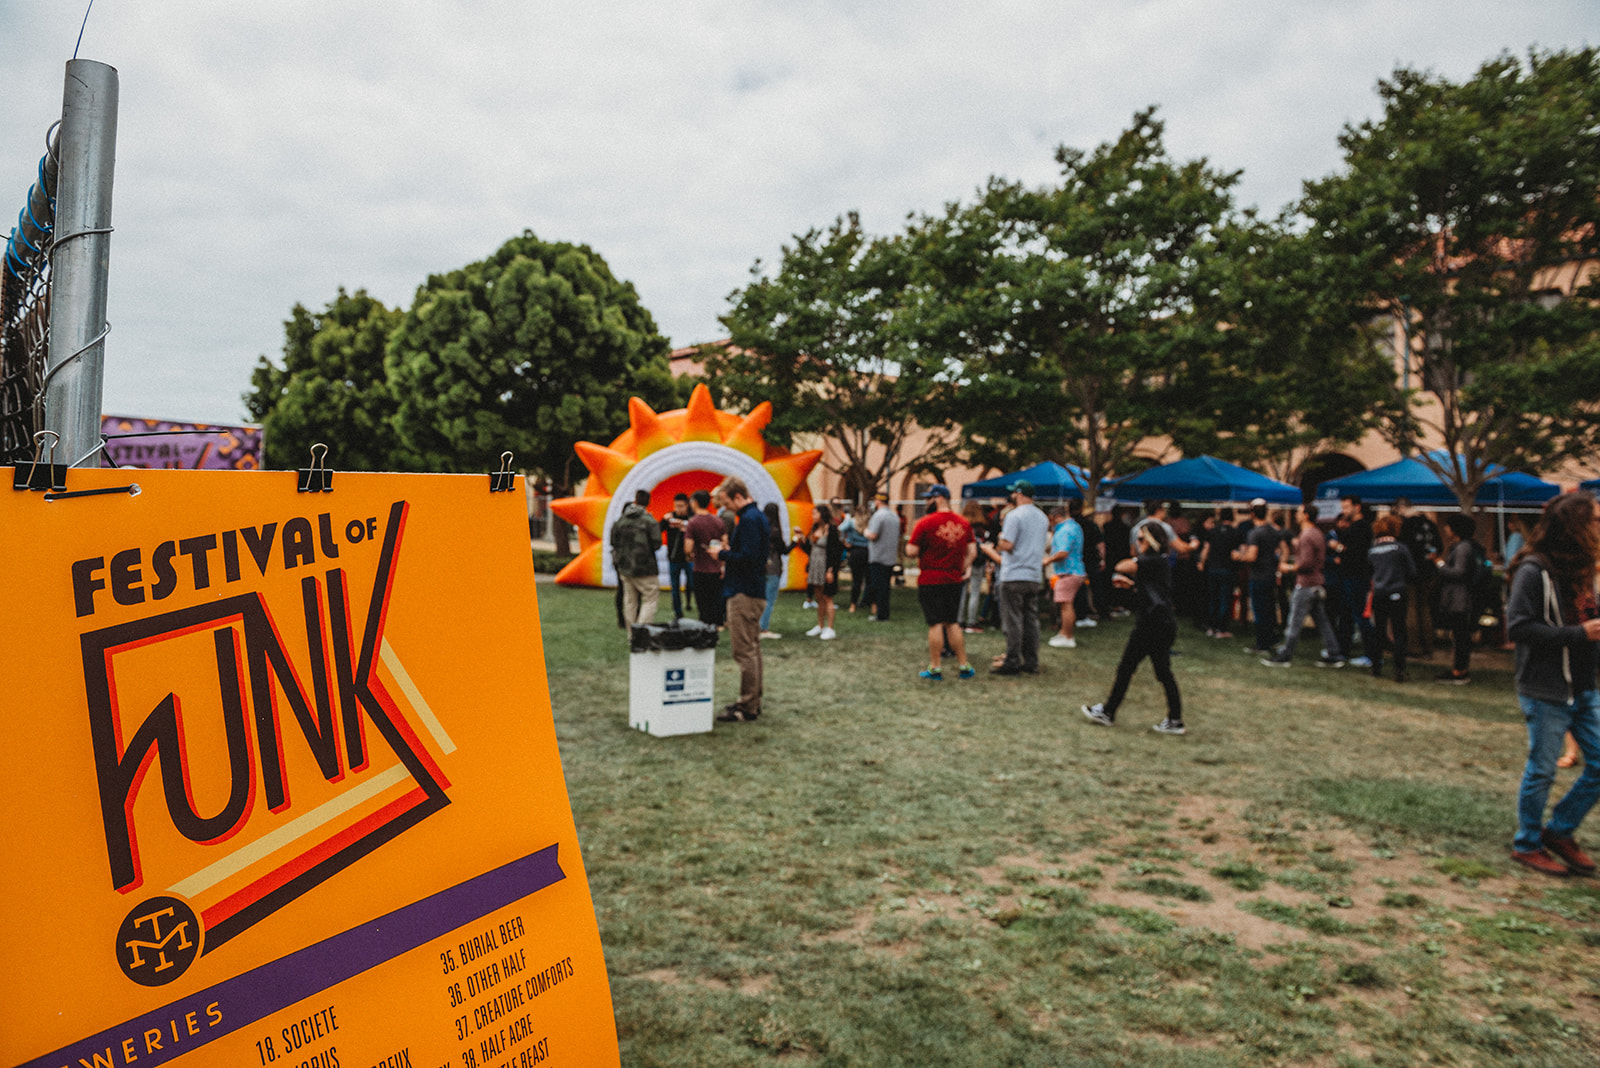 So many rad breweries came out to pour drinks for this year's Festival of Funk. Including  Society Brewing Company ,  Burial Beer ,  Other Half Brewing ,  Creature Comfort Brewing Co. ,  Half Acre Beer Co. , and over 30 more wonderful companies.